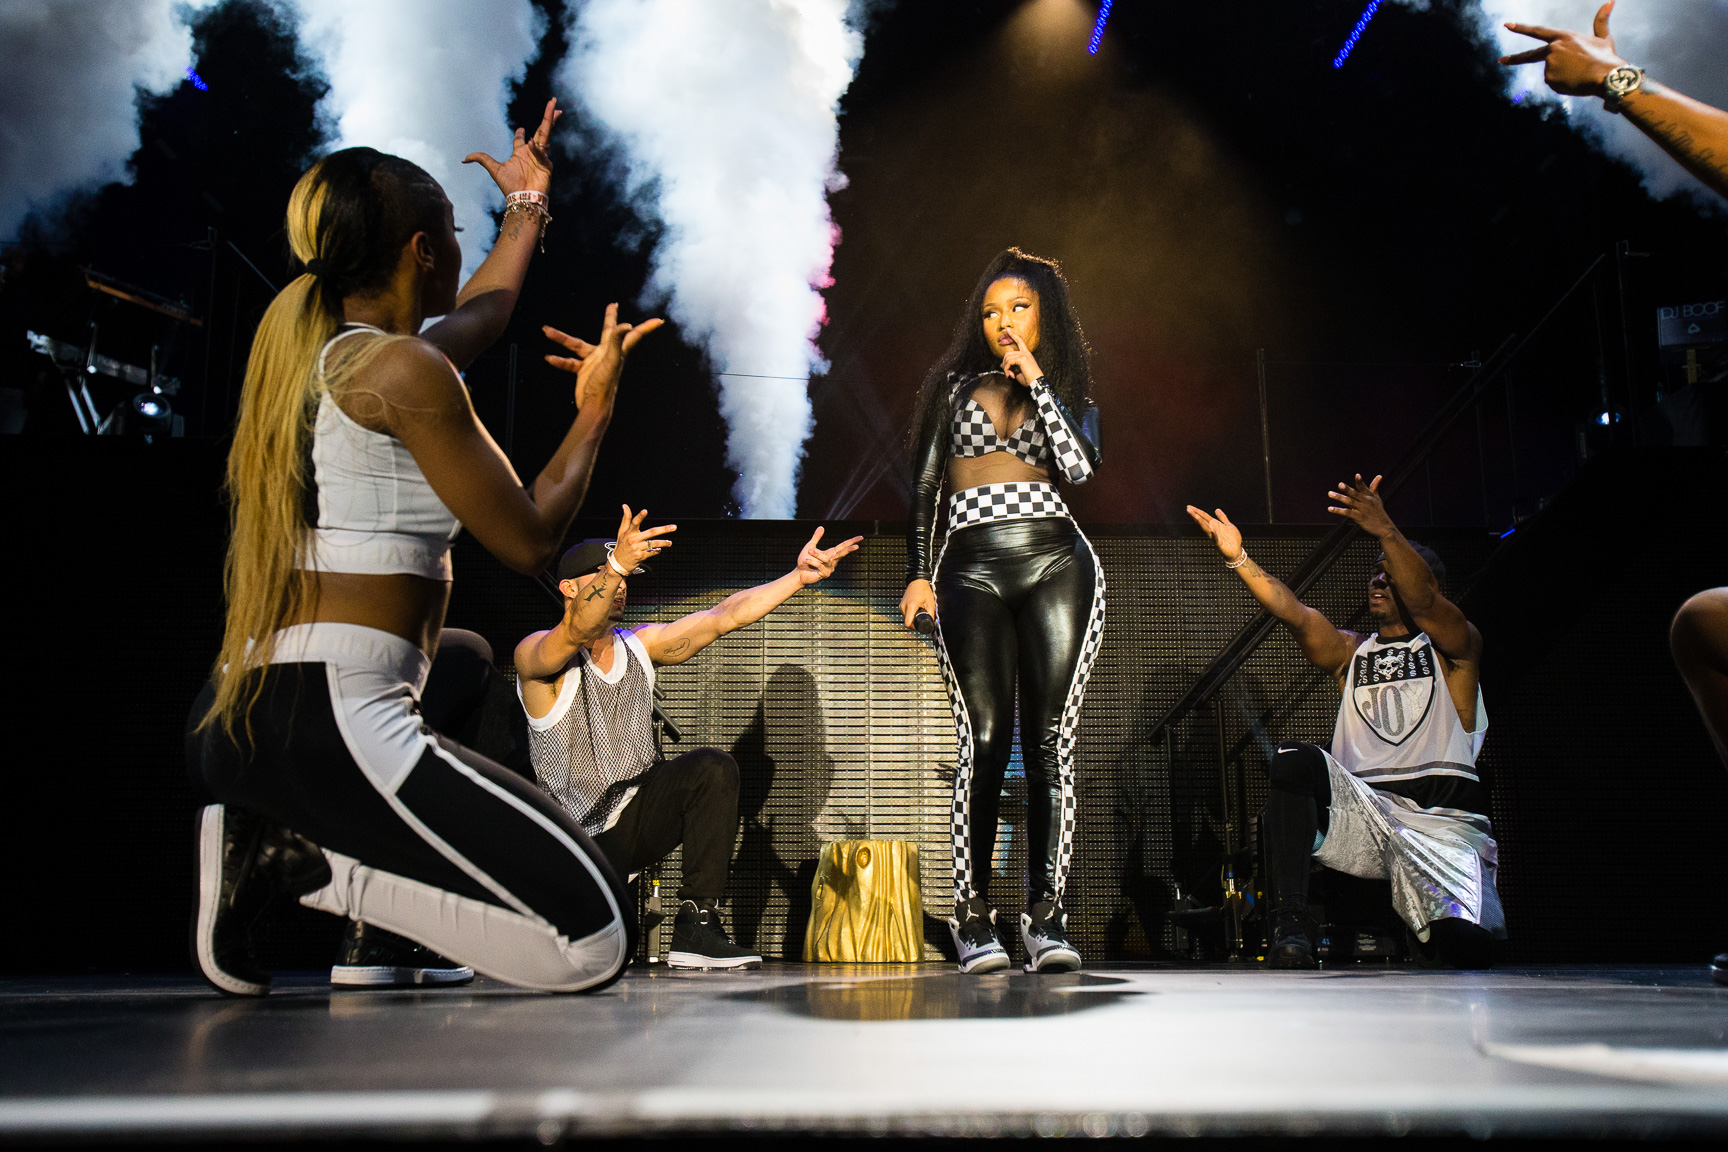 Friday's headlining musician Nicki Minaj put a cherry on top of the first full day of action at X Games Austin 2015.  Clad in a racetrack-inspired white-and-black checkered leather bodysuit, Minaj rocked the house and even brought her boyfriend Meek Mill up onstage for a surprise performance.